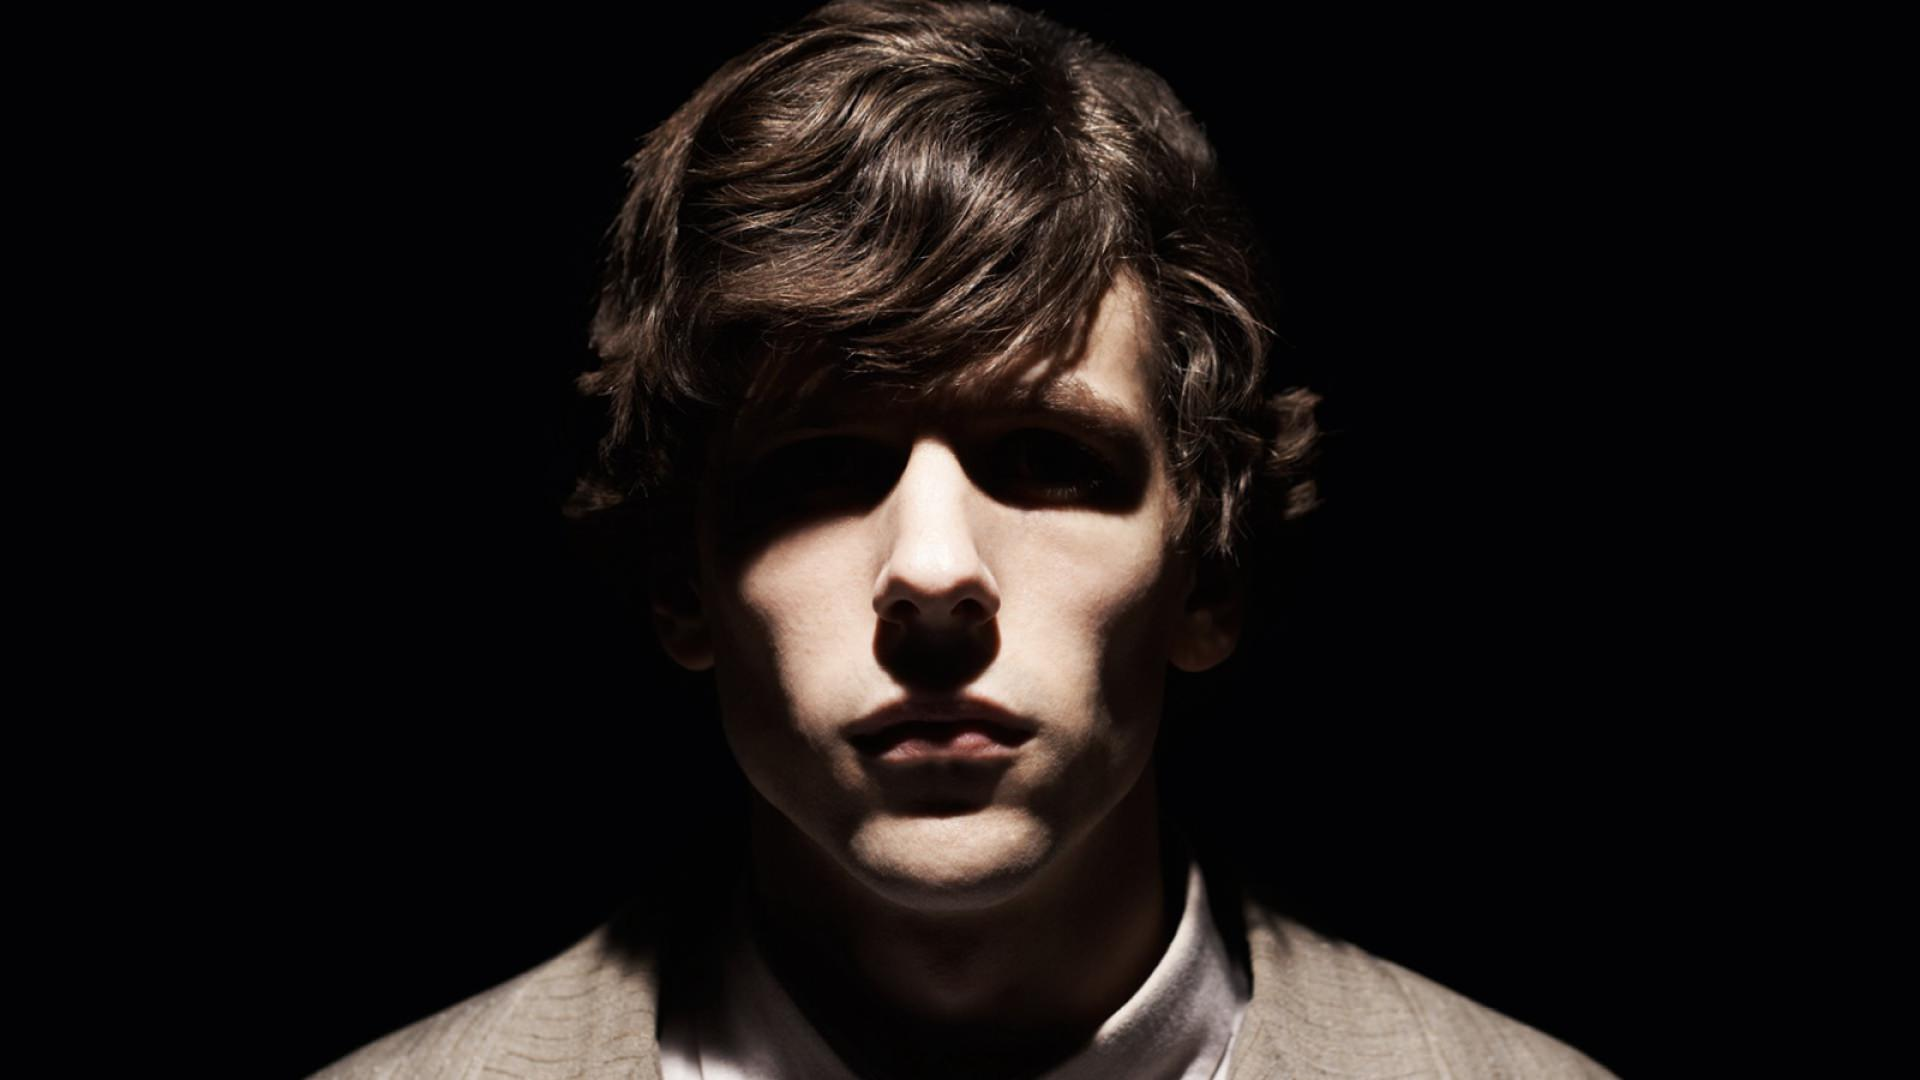 Jesse Eisenberg Full hd wallpapers